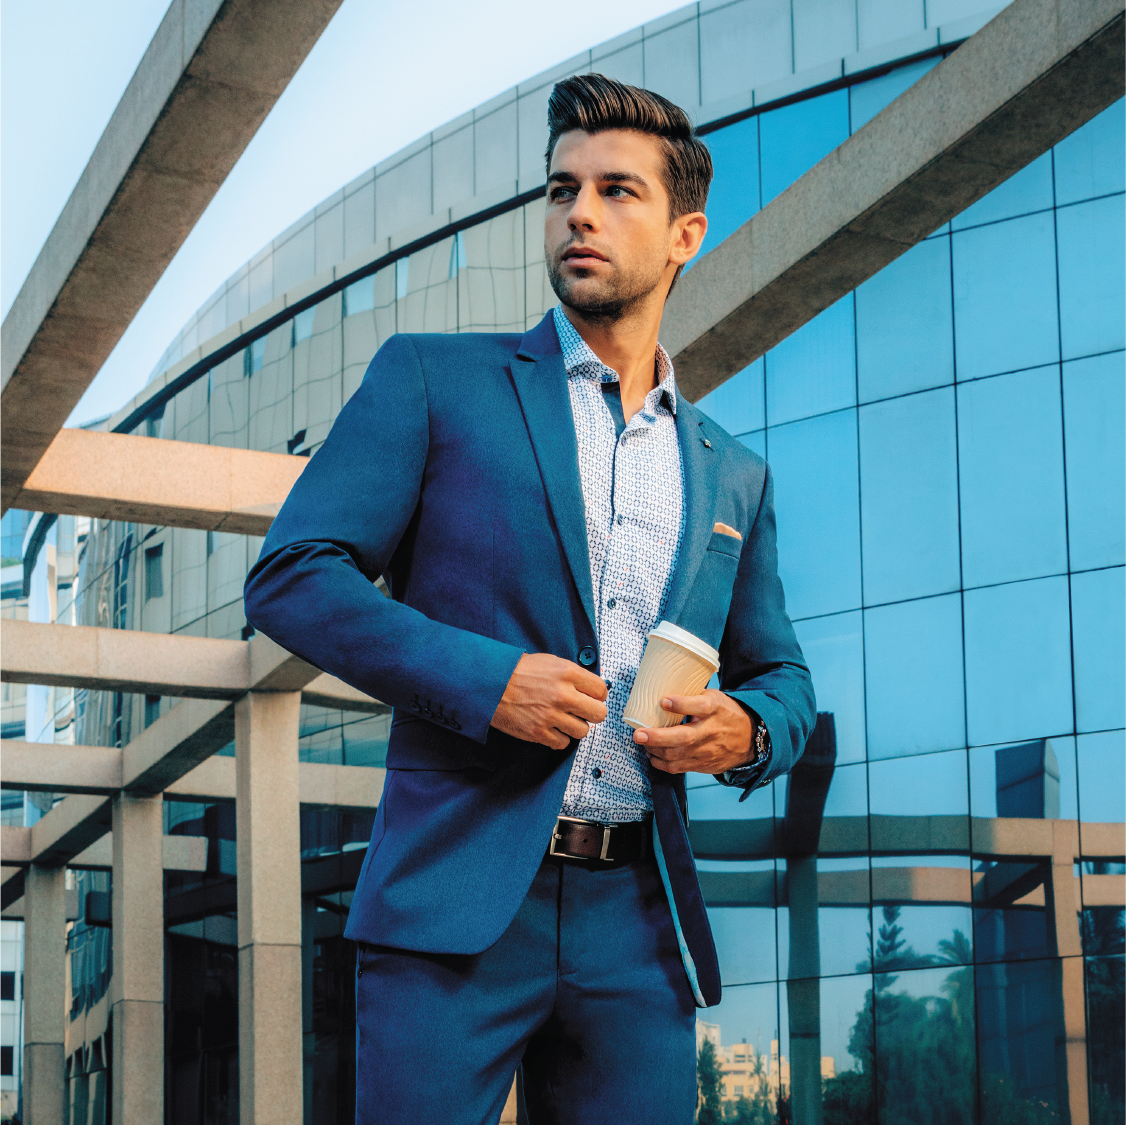 how to dress for work according to your office dress code